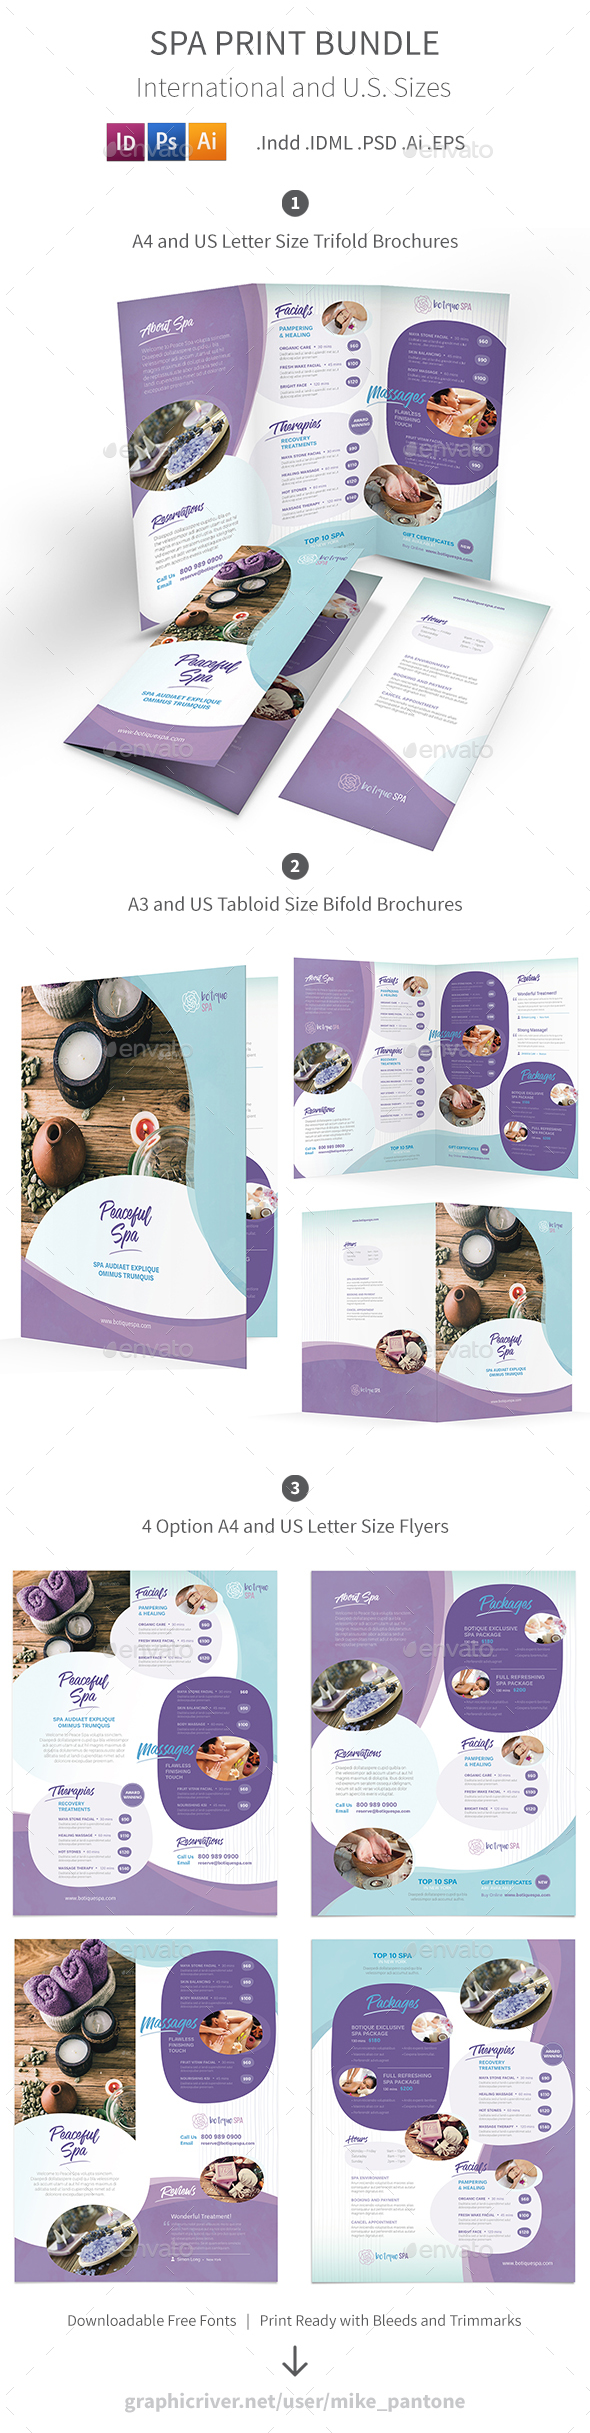 Spa Print Bundle 8 - Informational Brochures